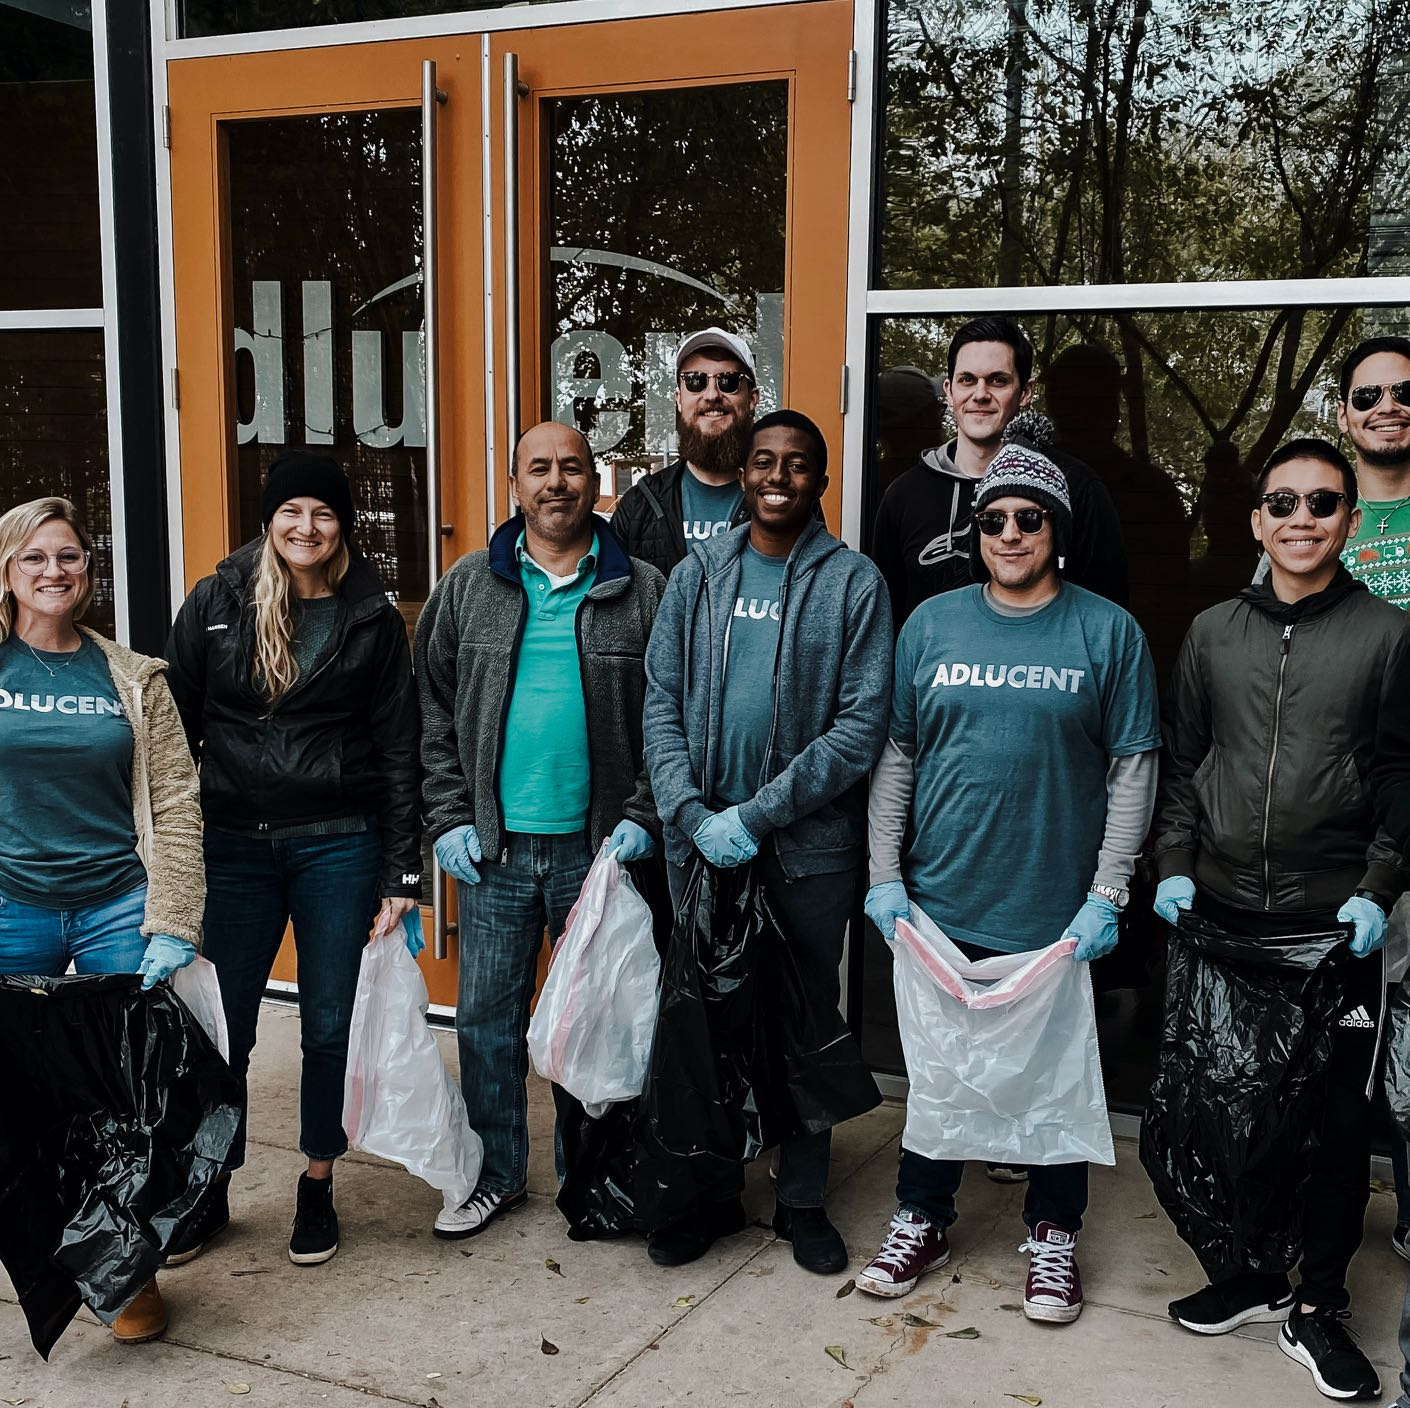 Adlucent team working in community